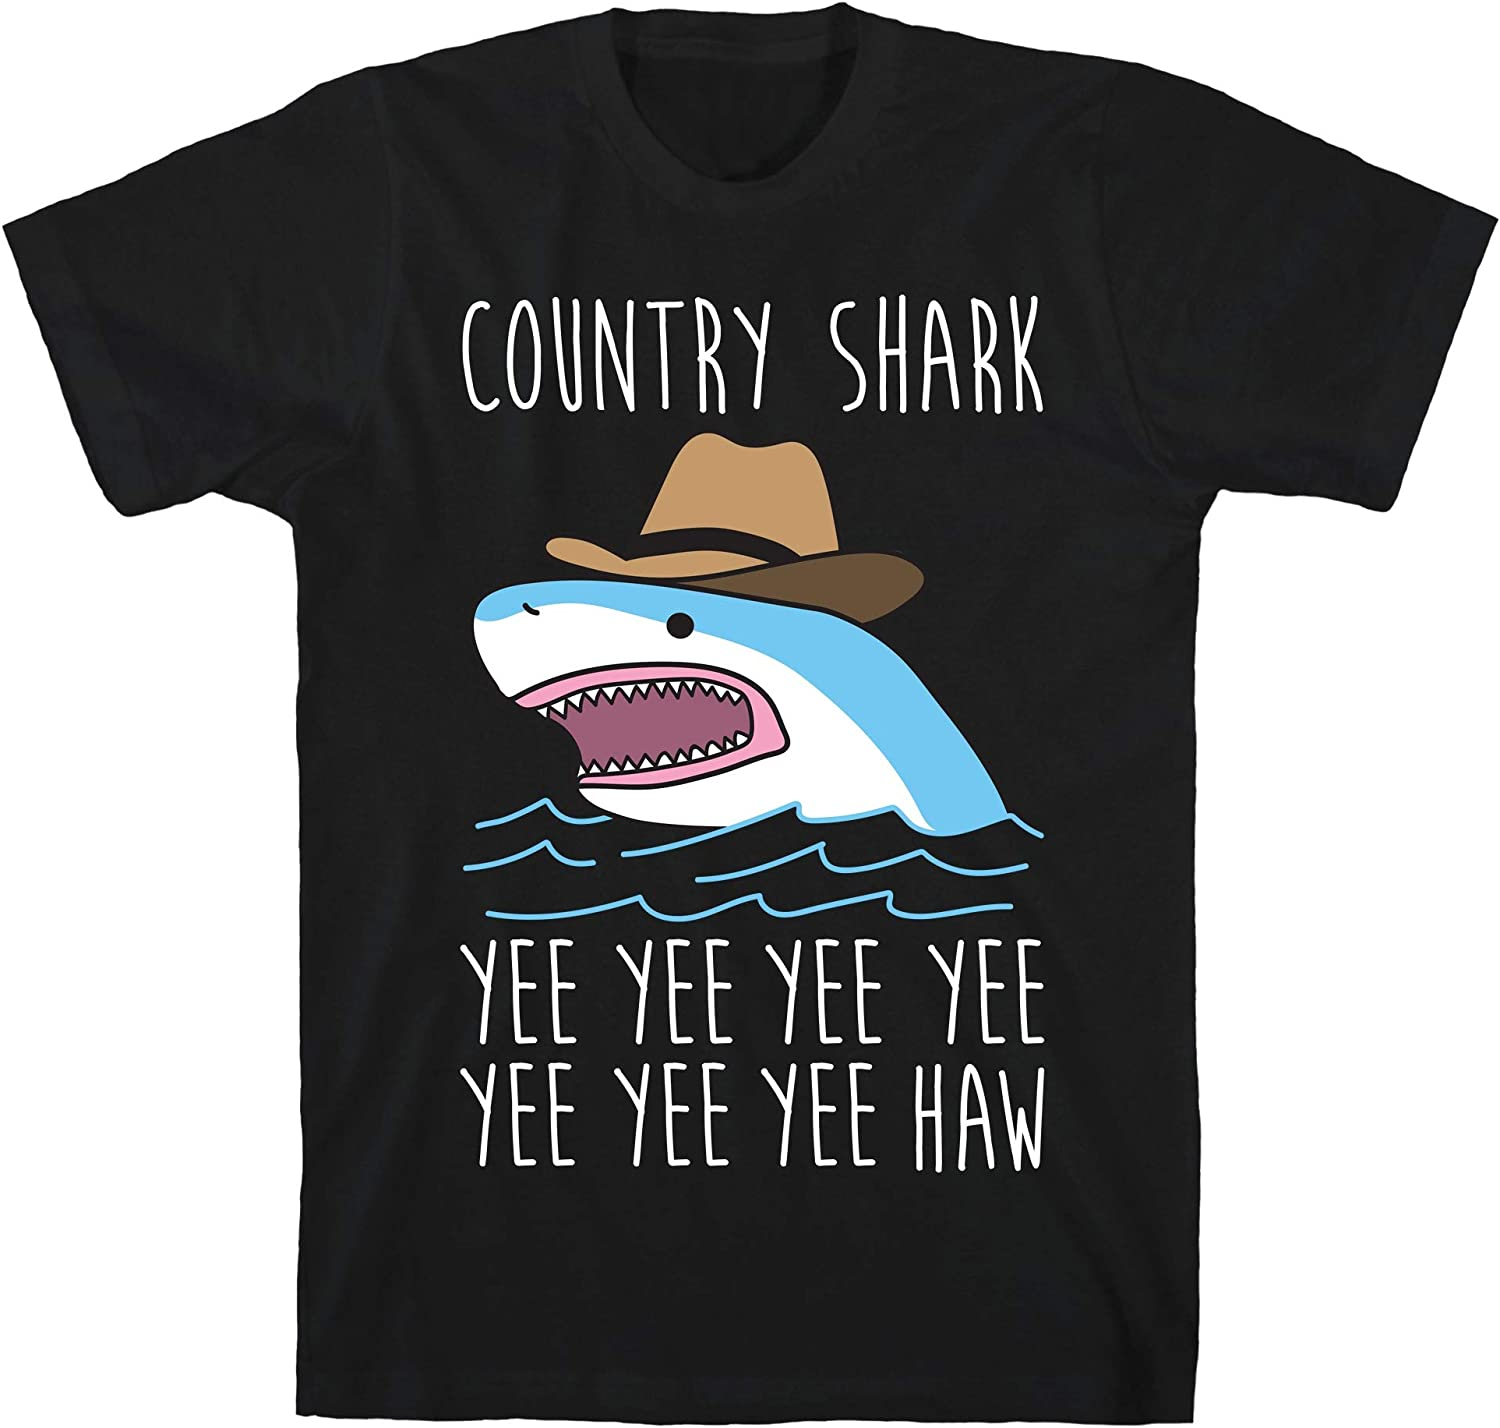 LookHUMAN Country Shark Yee Haw Black Unisex Cotton Tee